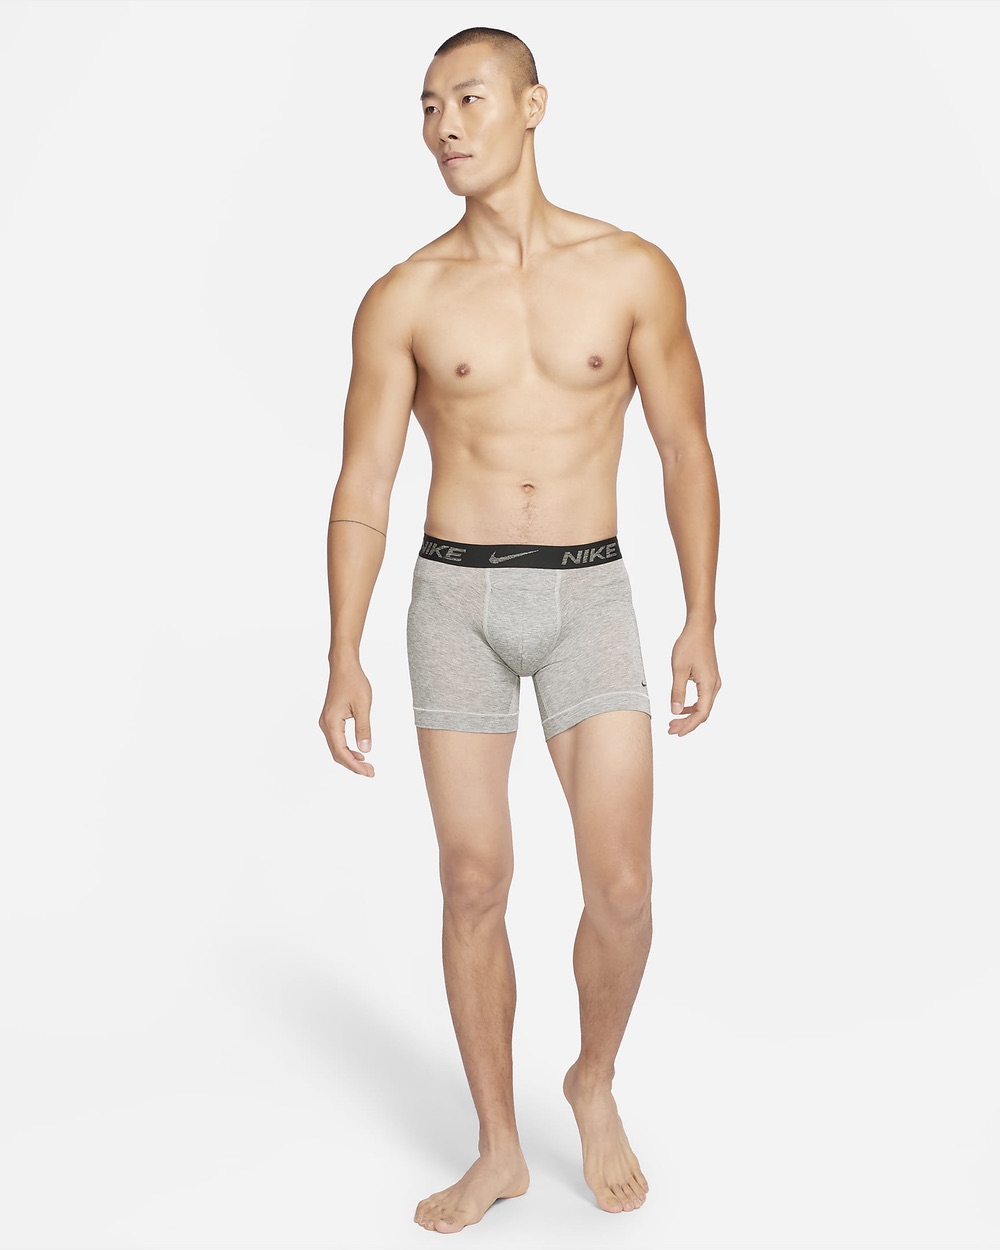 Nike has unveiled a men's boxer brief that comprises at least 75 percent recycled polyester to reduce waste and carbon emissions.